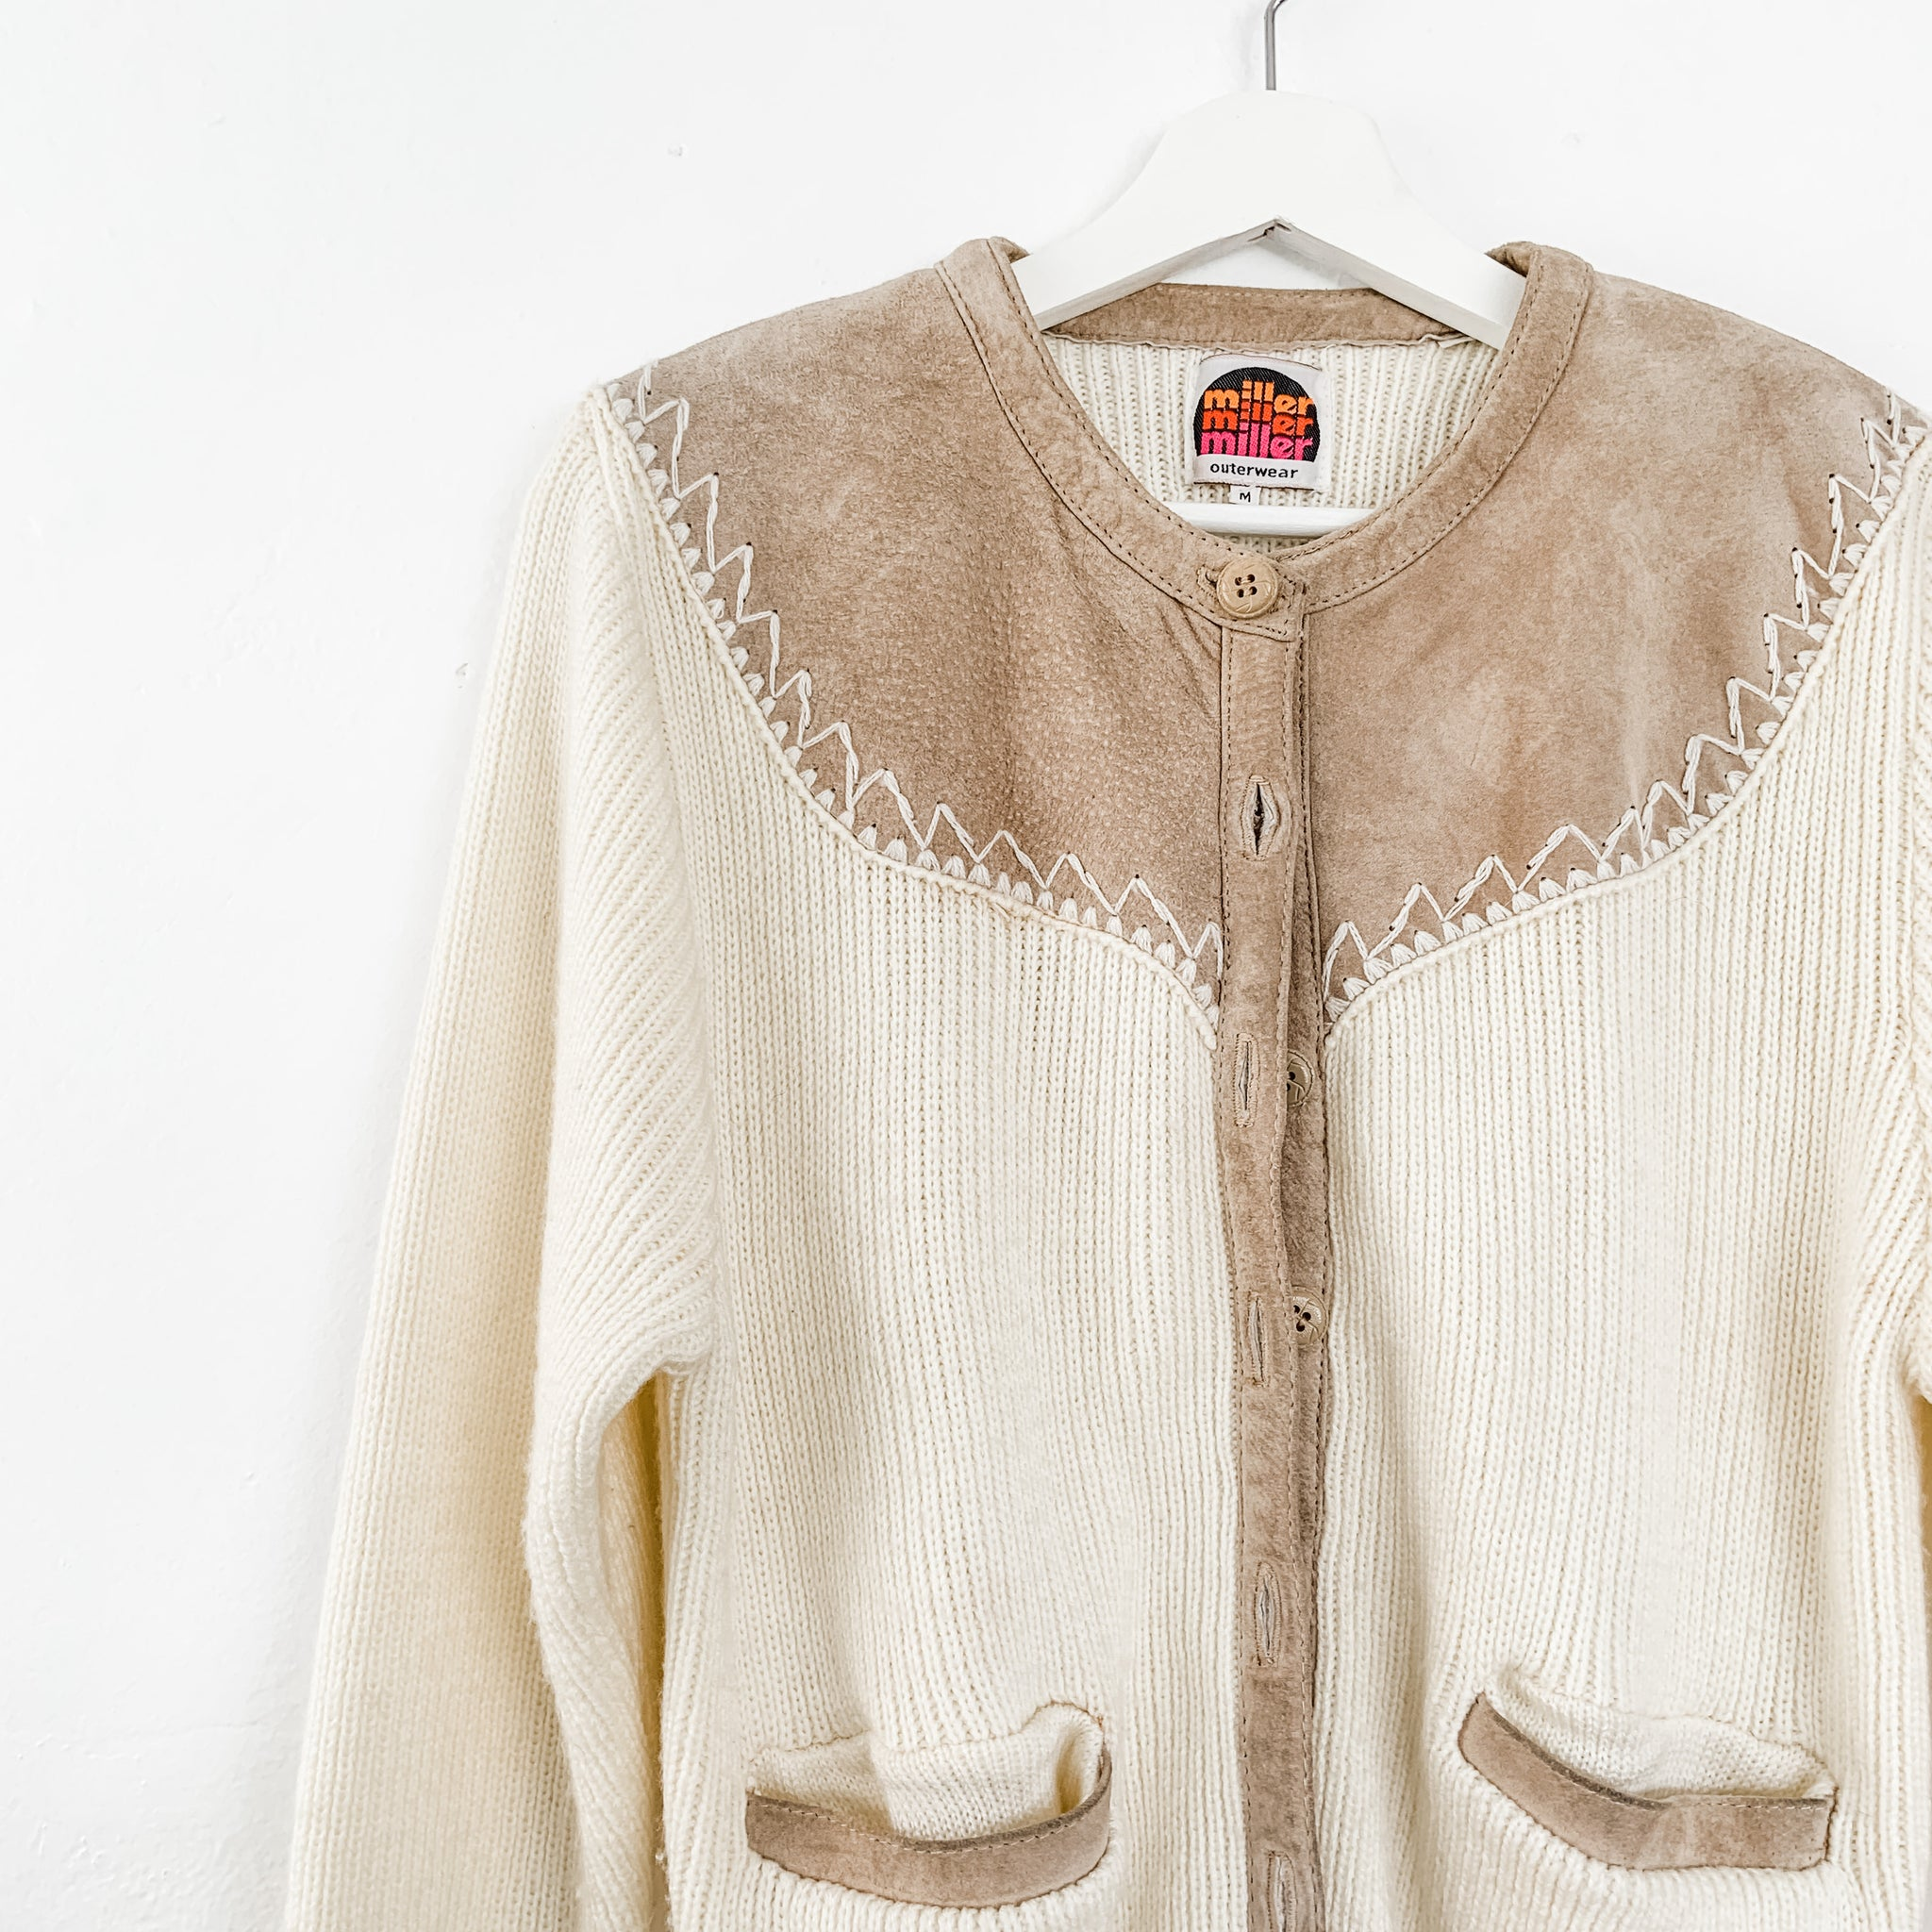 Vintage Cardigan Sweater with suede accents